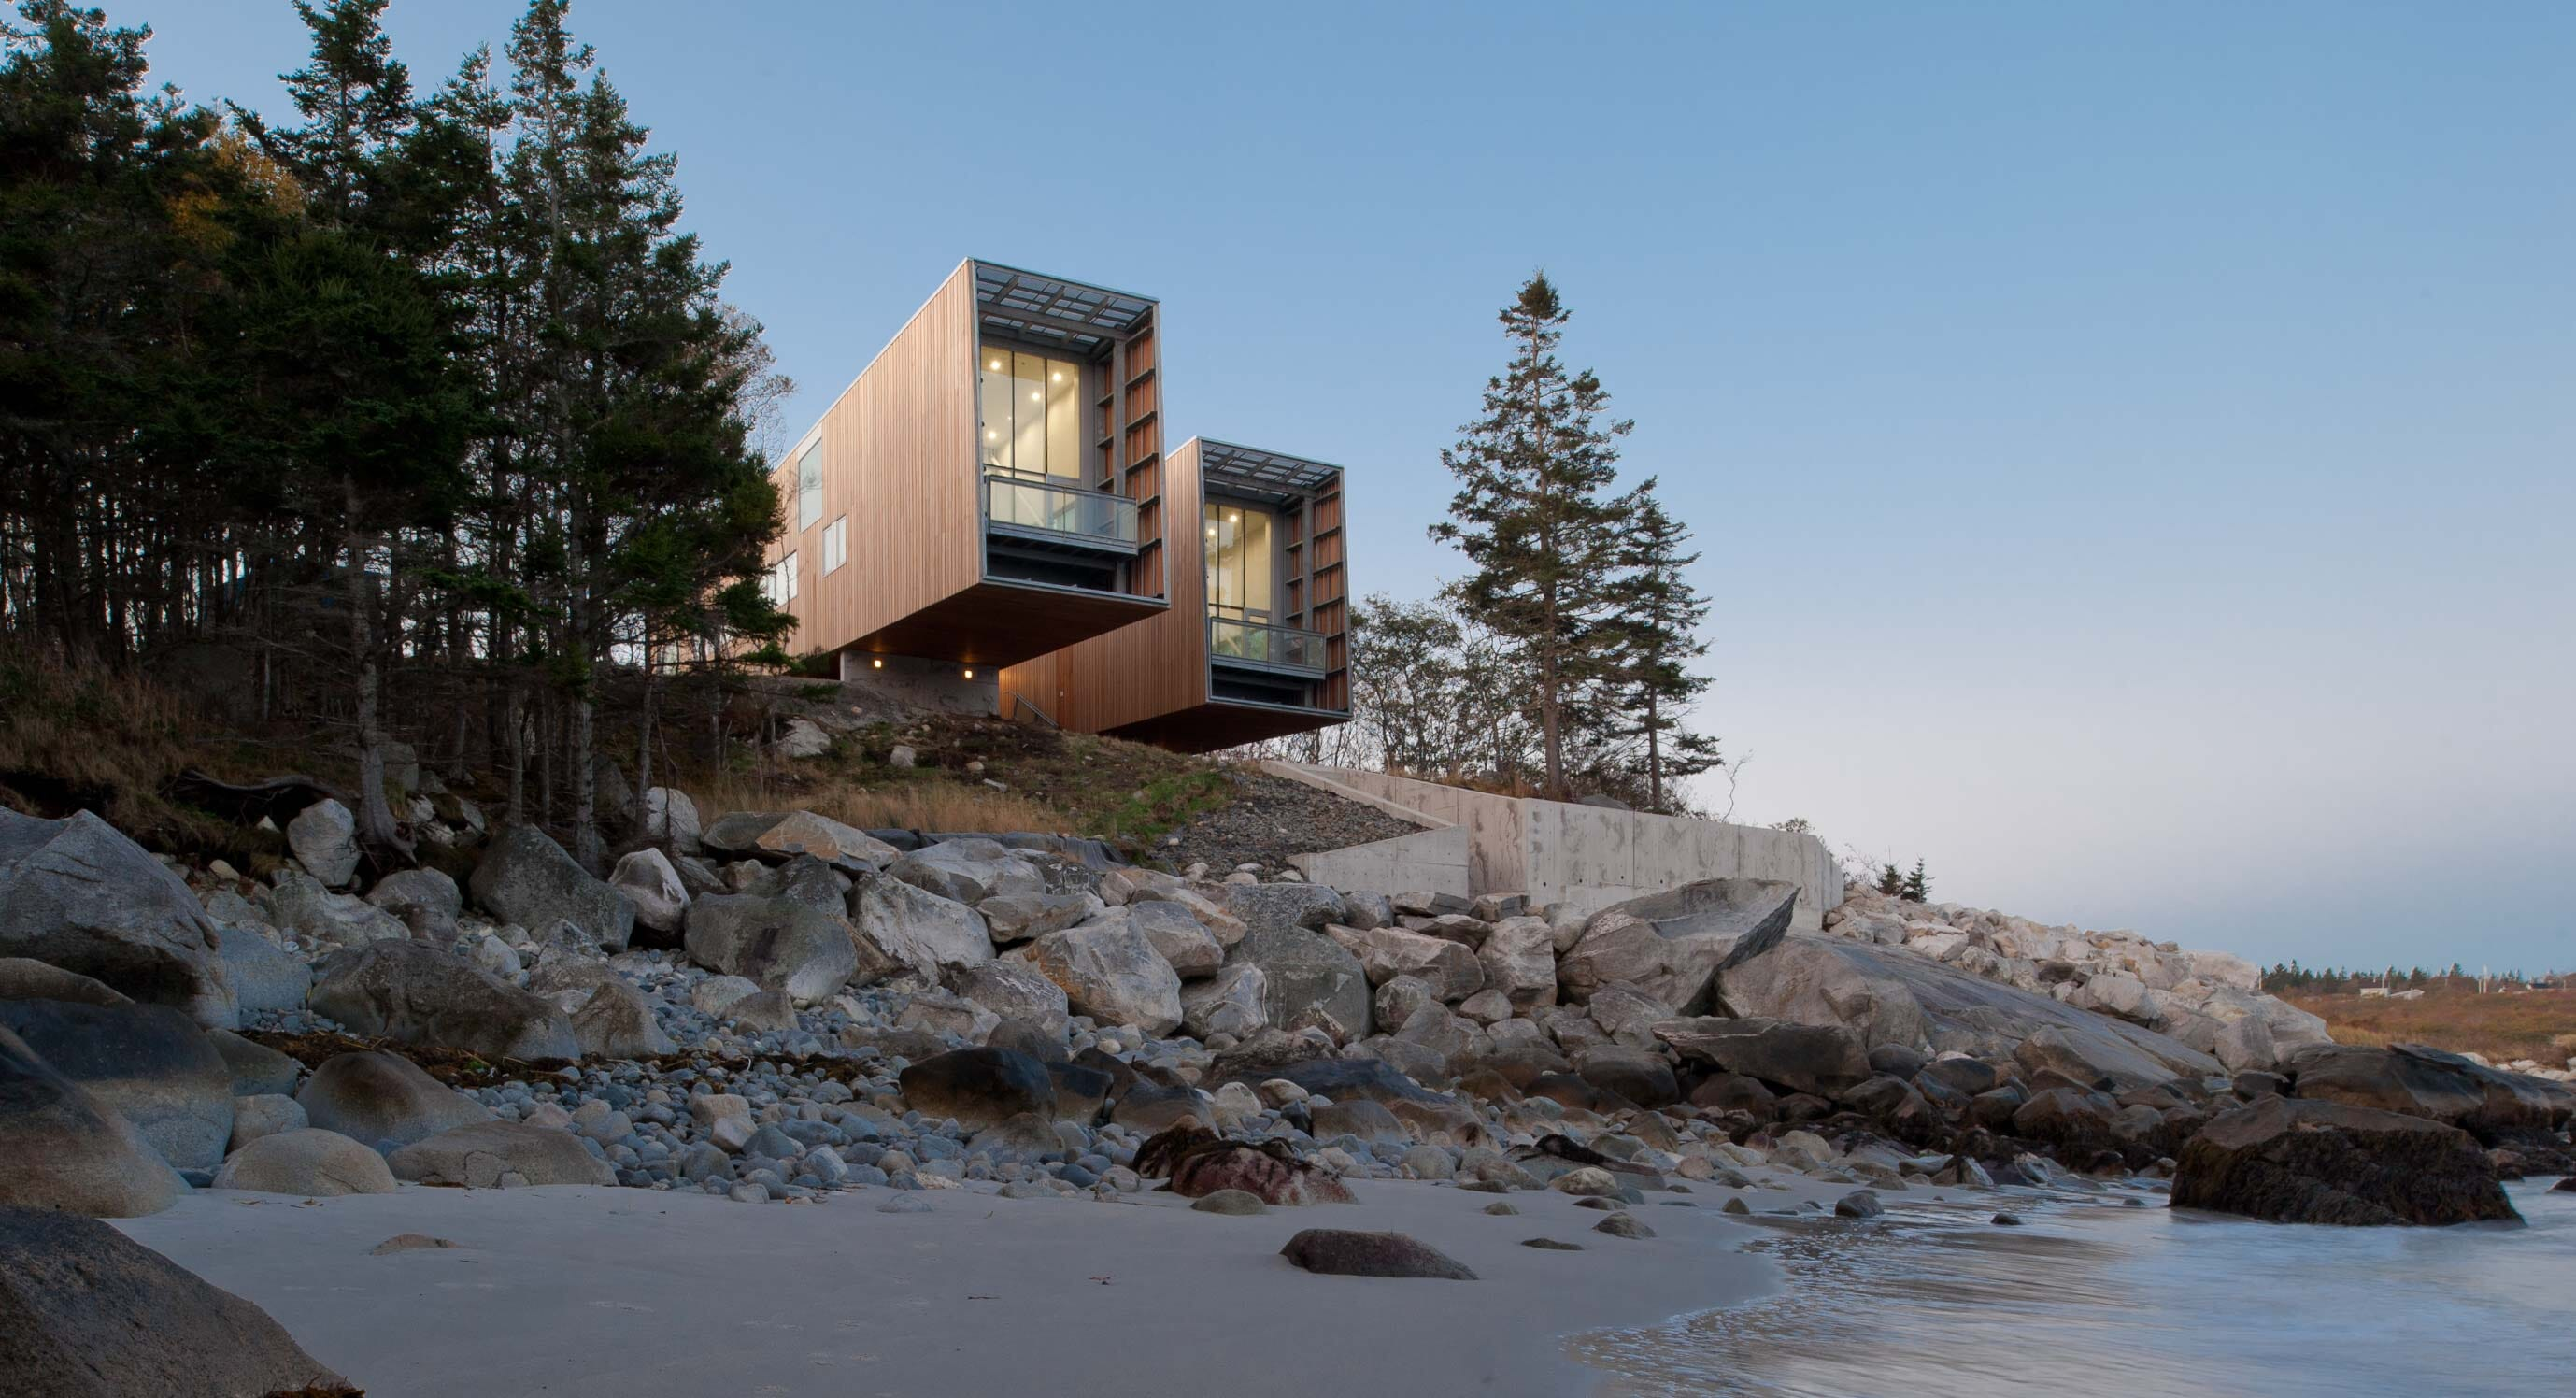 Two Hulls House: Reacting to context